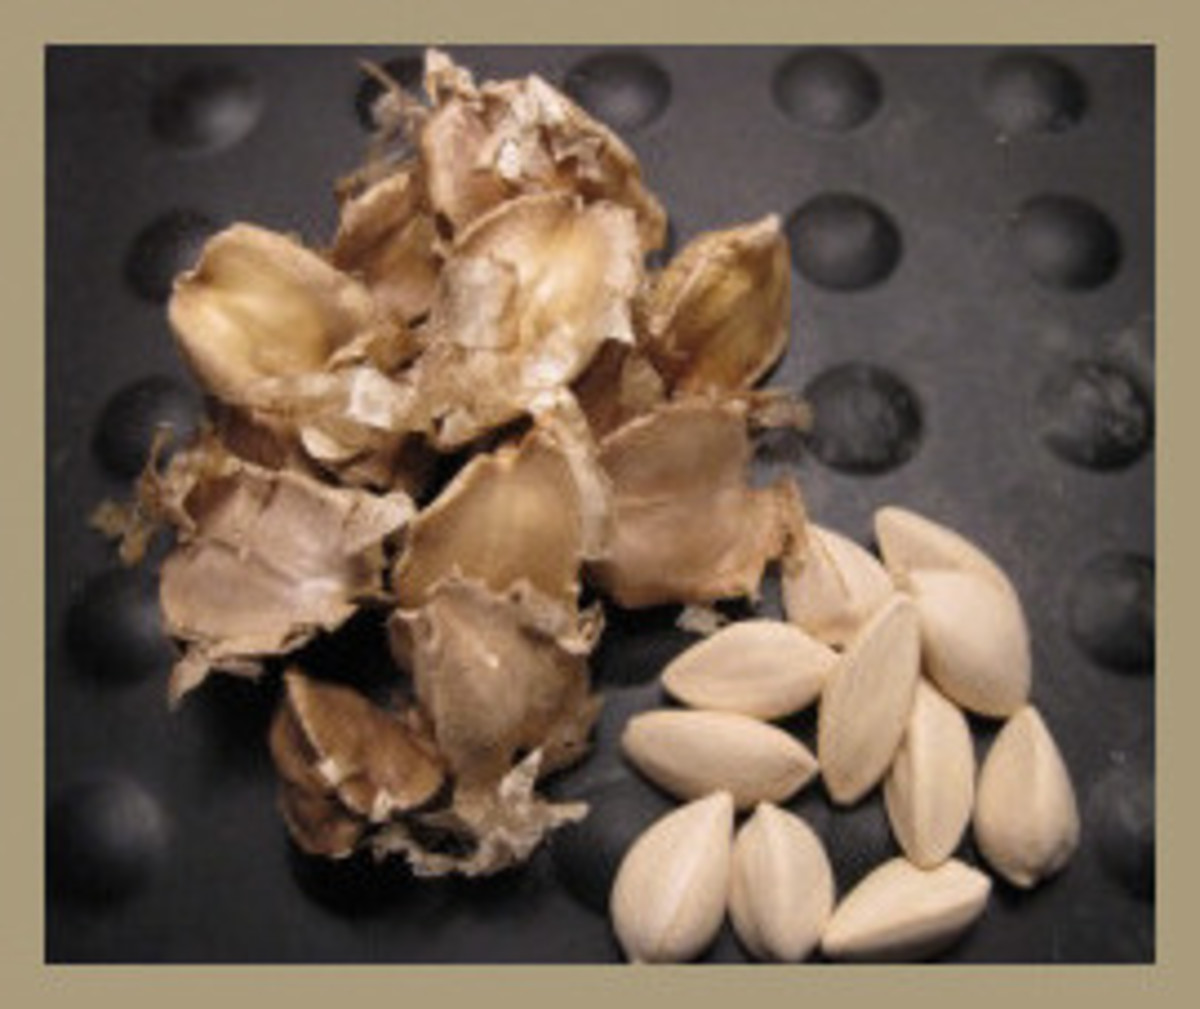 The Moringa Stenopetala seeds on the left are still in their husks, or shells. Those on the right side are husked or shelled.